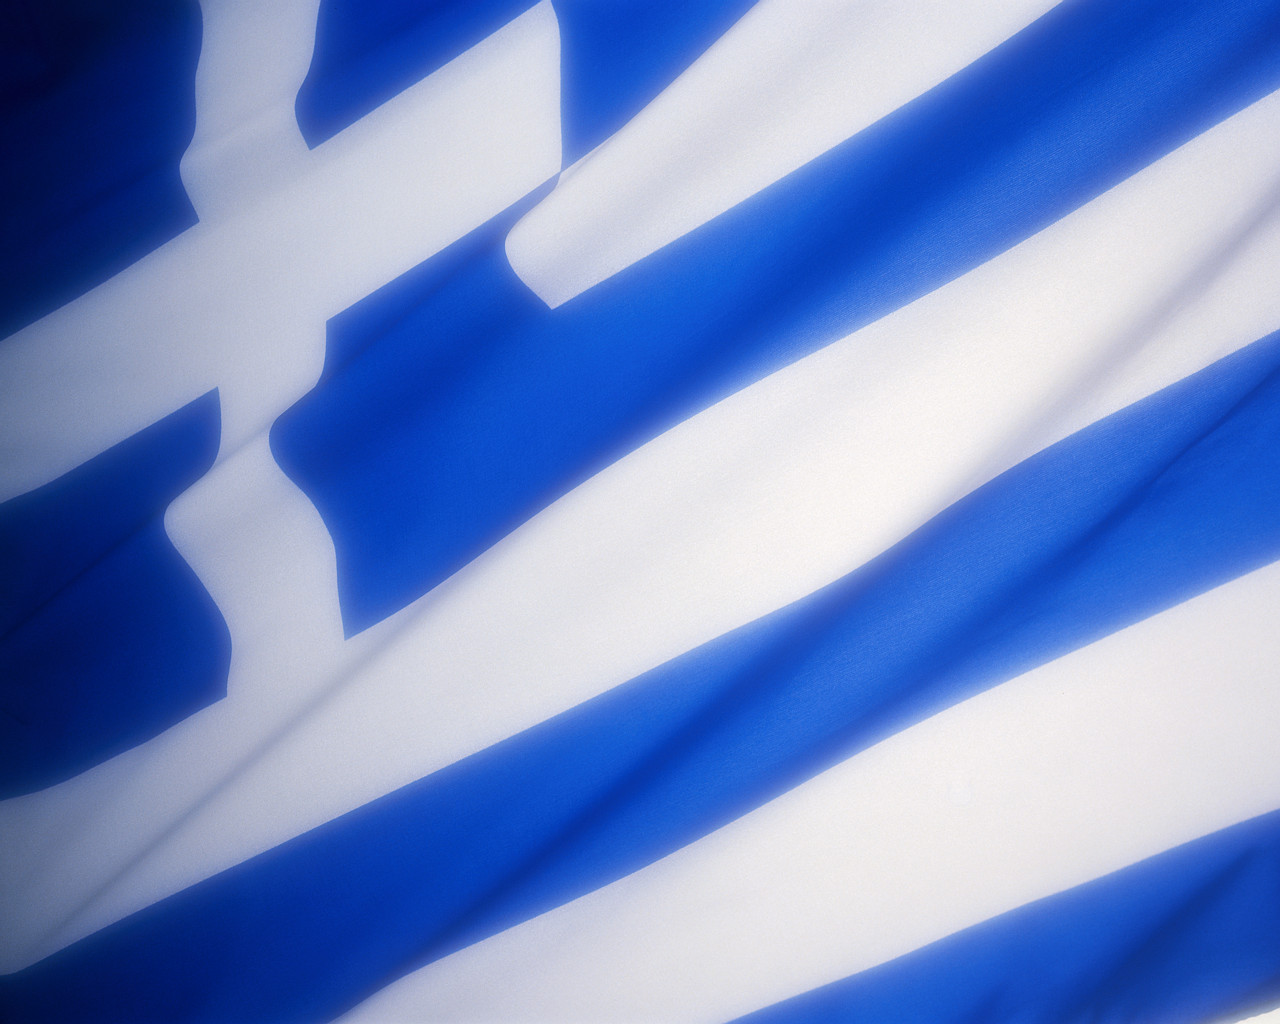 Graafix Wallpapers Flag of Greece 1280x1024